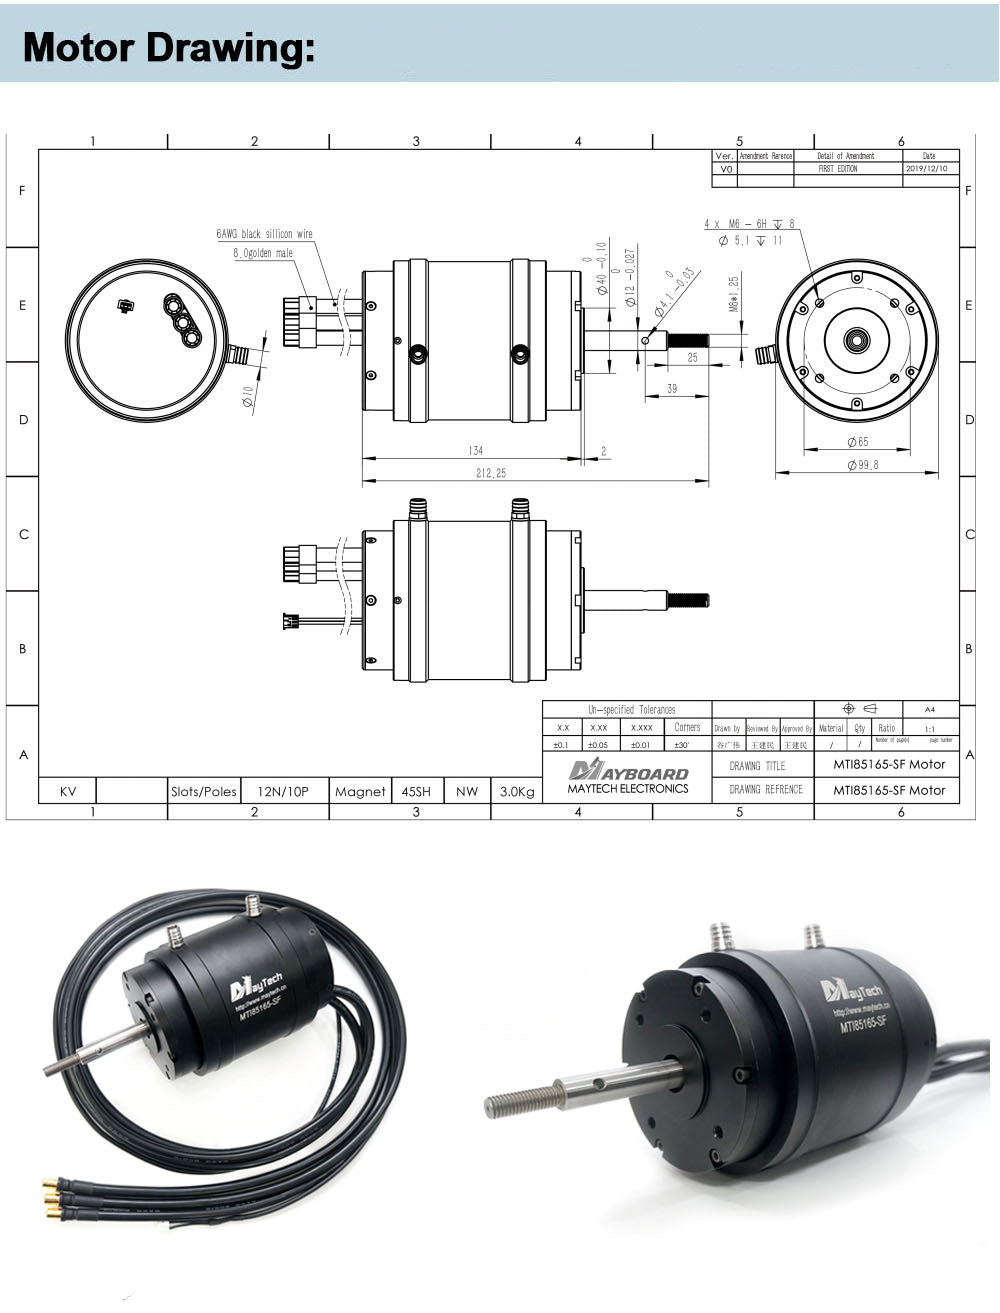 Model No. MTI85165-200-WP KV 200 Internal Resistance 0.0322Ω Max Current 300A Input Volt 12-16S Lipo Idle Current 2.1A/8.4V Max Pull 15.5 N.m Max Output Watt 10.5KW Motor Size 85X167.2mm Shaft 12mm Cable Length 1m Waterproof Rank Fully Waterproof Sensor No Water-cooling No